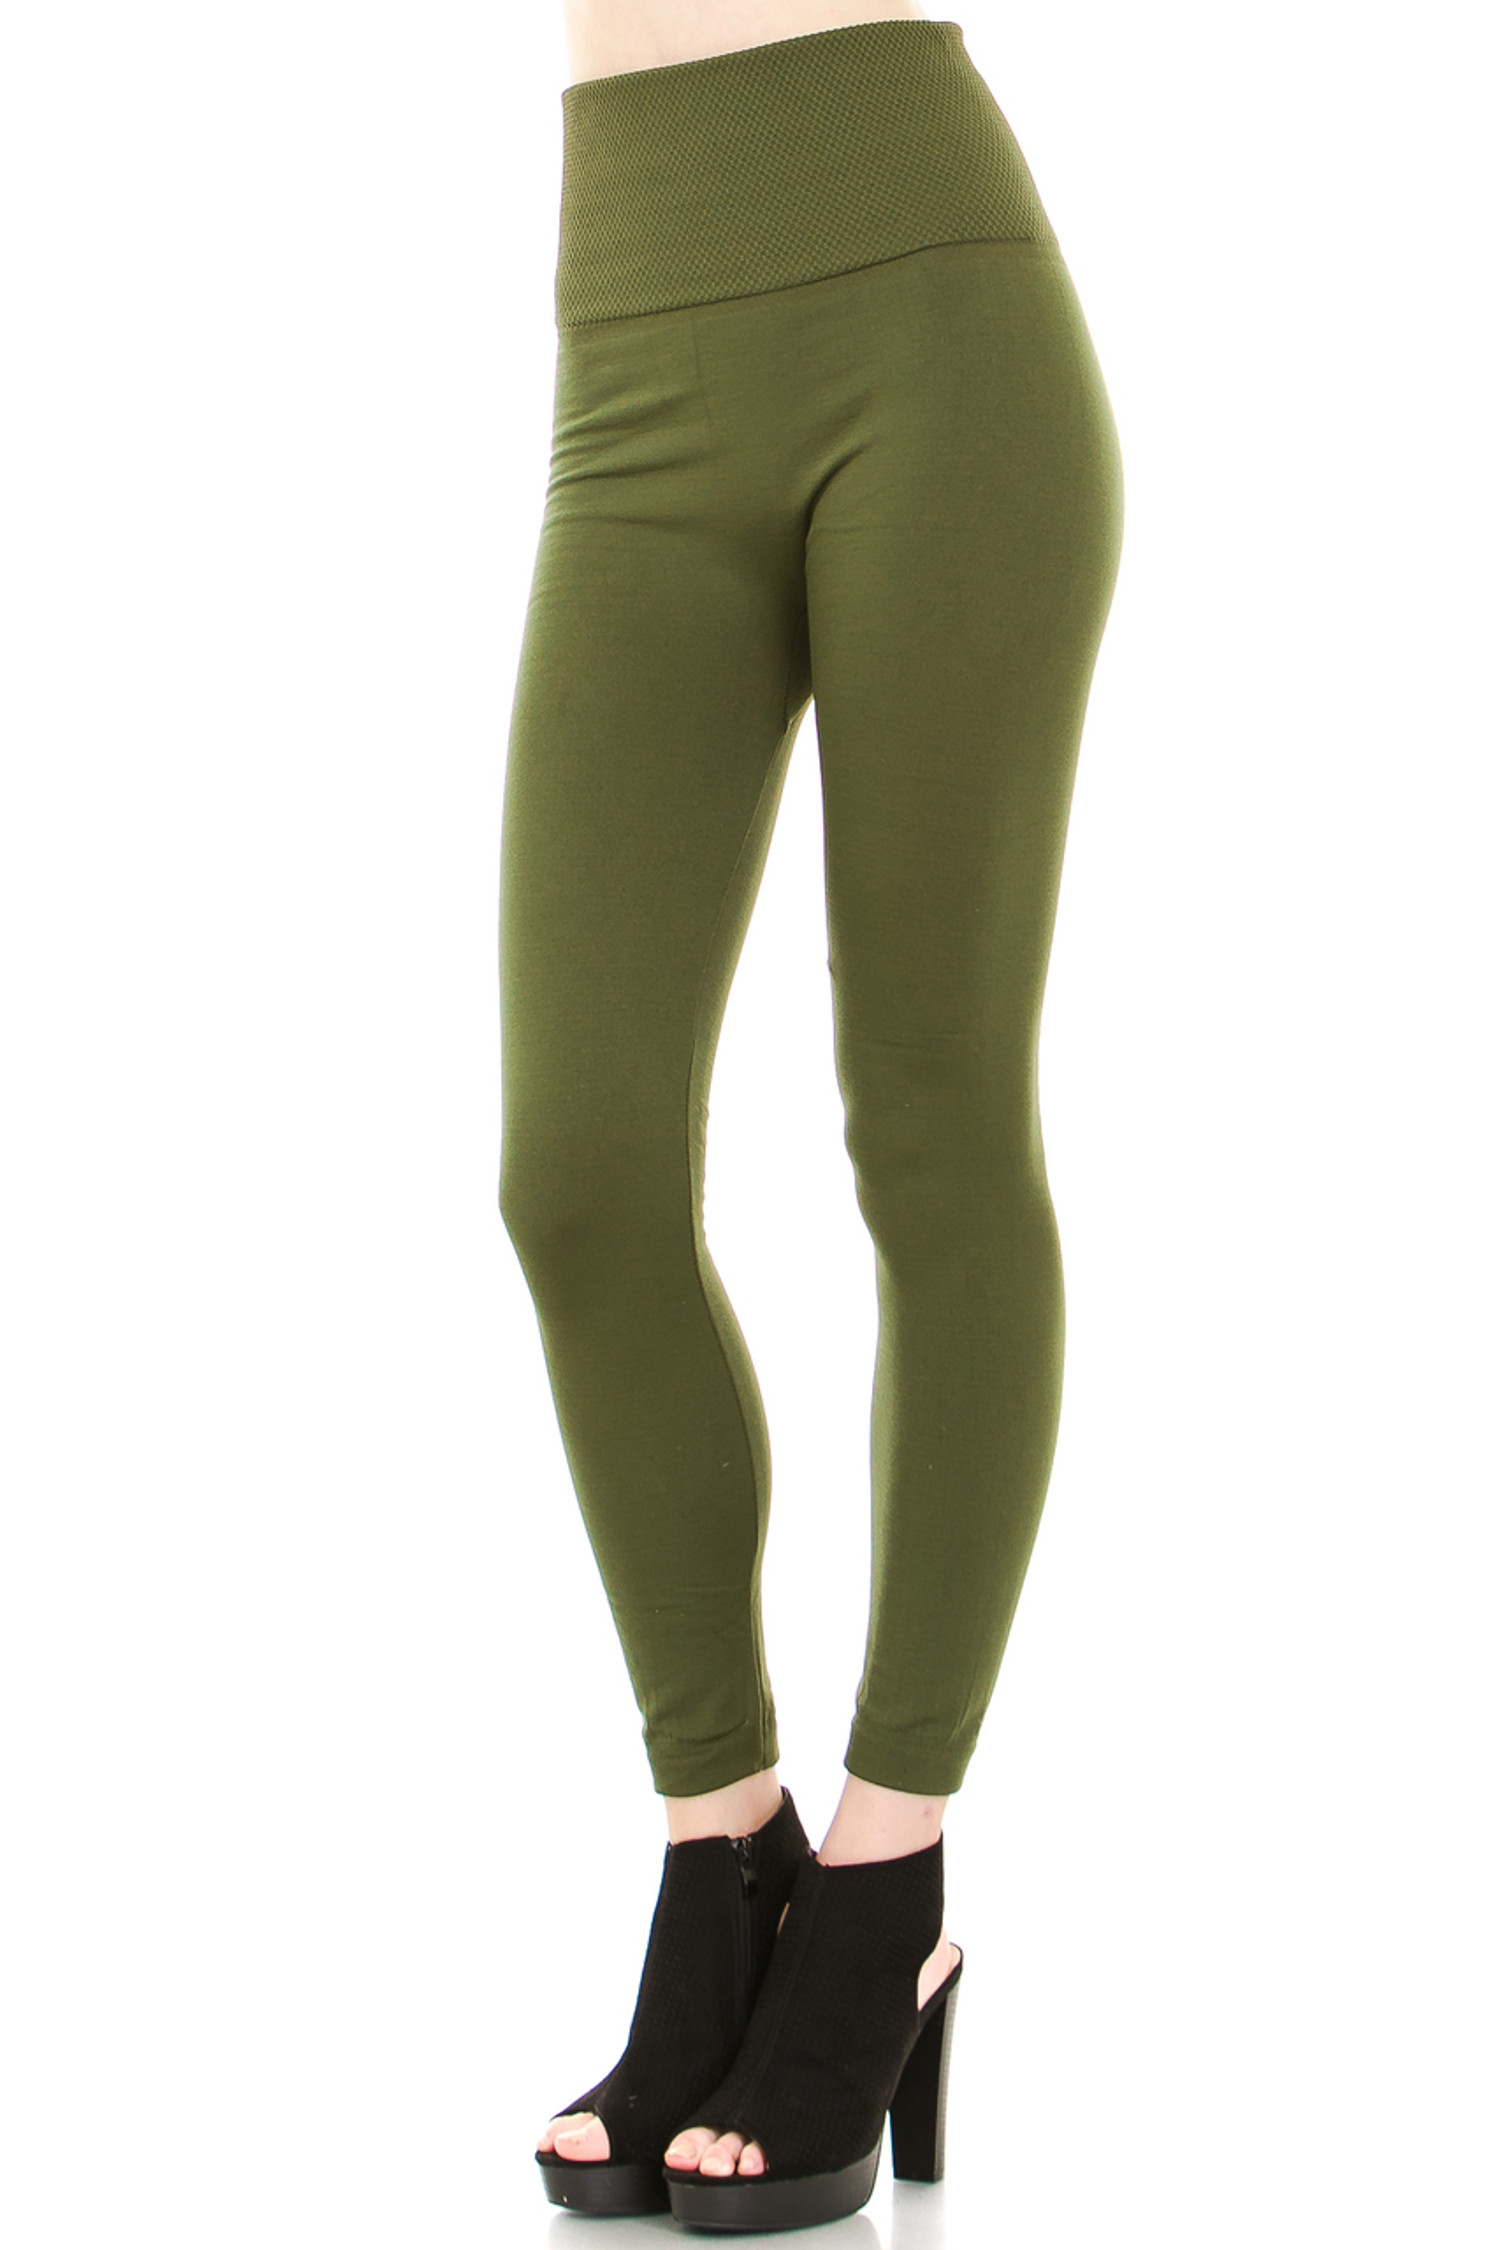 45 degree image of our Olive Banded High Waisted Fleece Lined Leggings showing the ribbed high waisted fabric waist band and full length Olive fleece legging